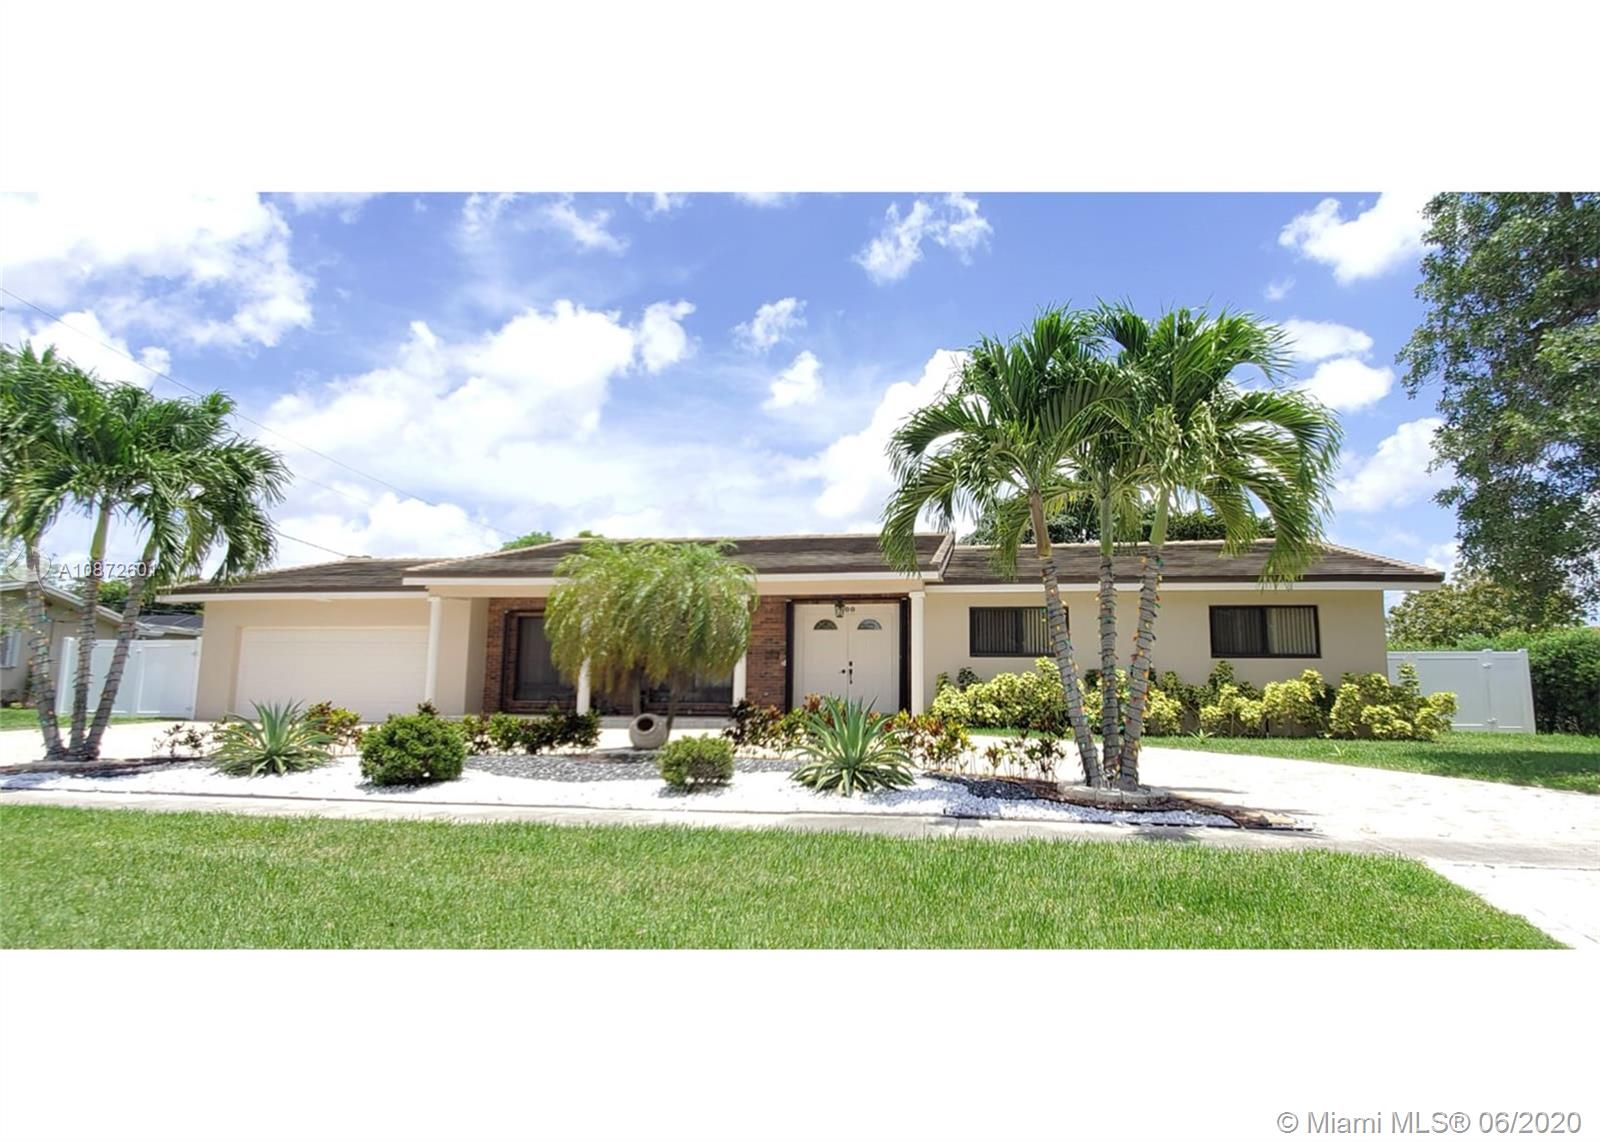 A MUST-SEE HOUSE IN PRESTIGIOUS PLANTATION. COMPLETELY REMODELED, FLOORS, BATHROOMS, KITCHEN, POOL DECK, IMPACT WINDOWS AND DOORS, 2 GARAGE DOORS, 14900 CORNER LOT. HUGE LEGAL FLORIDA ROOM, POTENTIAL TO BUILD 2 MORE ROOMS IN THE BACK OF THE PROPERTY, JUST NEED TO ACQUIRE PERMITS. ENCLOSED POOL AREA, LARGE PATIO WITH ENOUGH SPACE TO KEEP YOUR BOAT OR RV. LOCATED IN FRONT OF USPS PLANTATION OFFICE WITHIN 10 MINUTES AWAY FROM BROWARD MALL, NOVA UNIVERSITY, BROWARD COLLEGE, RESTAURANTS & MORE... YOU WILL FALL IN LOVE WITH THIS HOUSE IMMEDIATELY... OWNER OCCUPIED, PLEASE DO NOT DISTURB, 24 HRS. REQ BEFORE SHOWING, USE SHOWING ASSIST.PLEASE SUBMIT PRE-QUALIFICATION LETTER WITH OFFER.